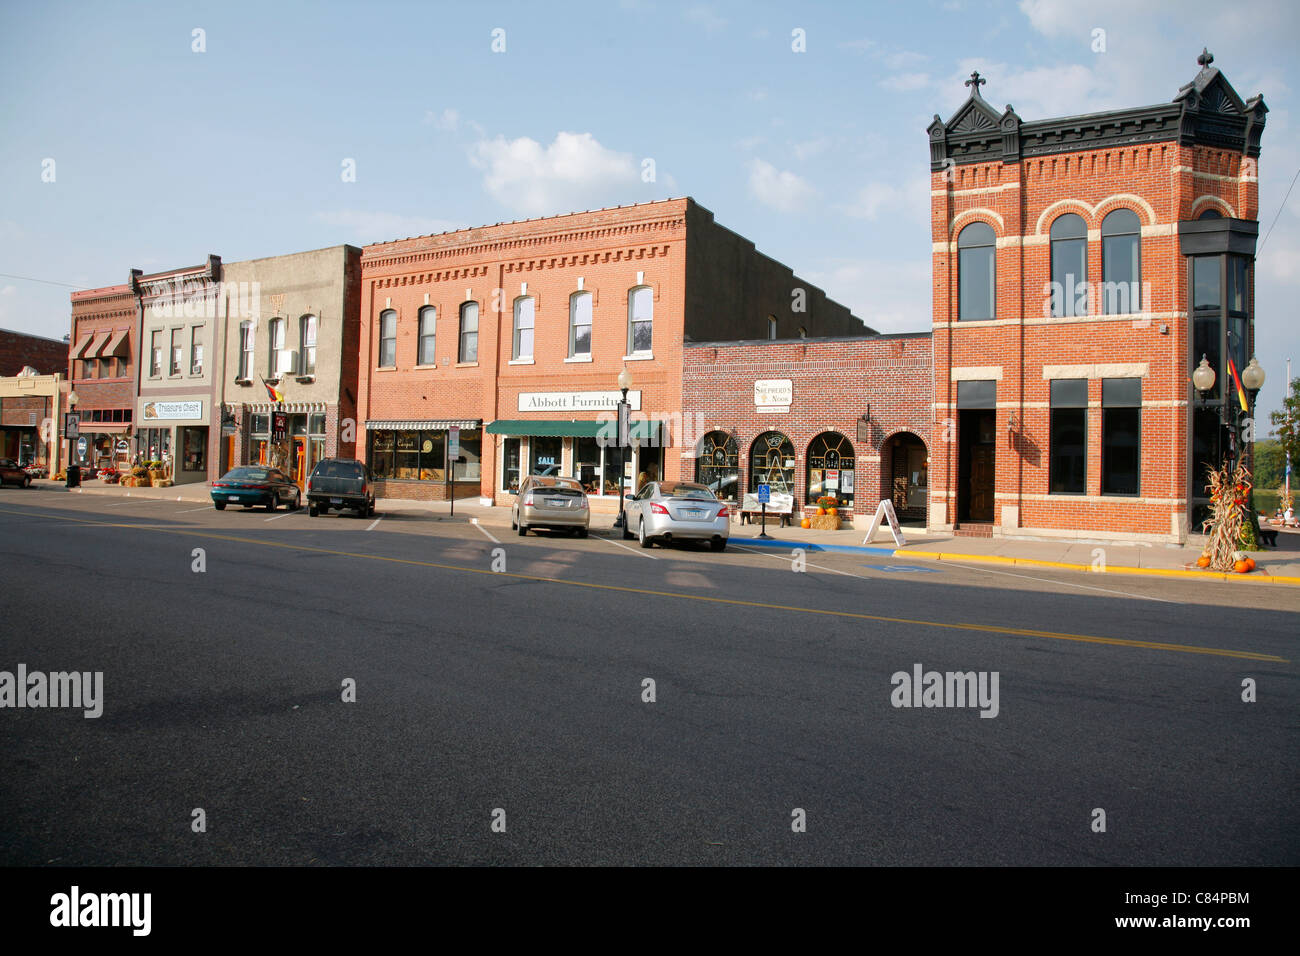 Downtown historic business district in Wabasha Minnesota USA - Stock Image